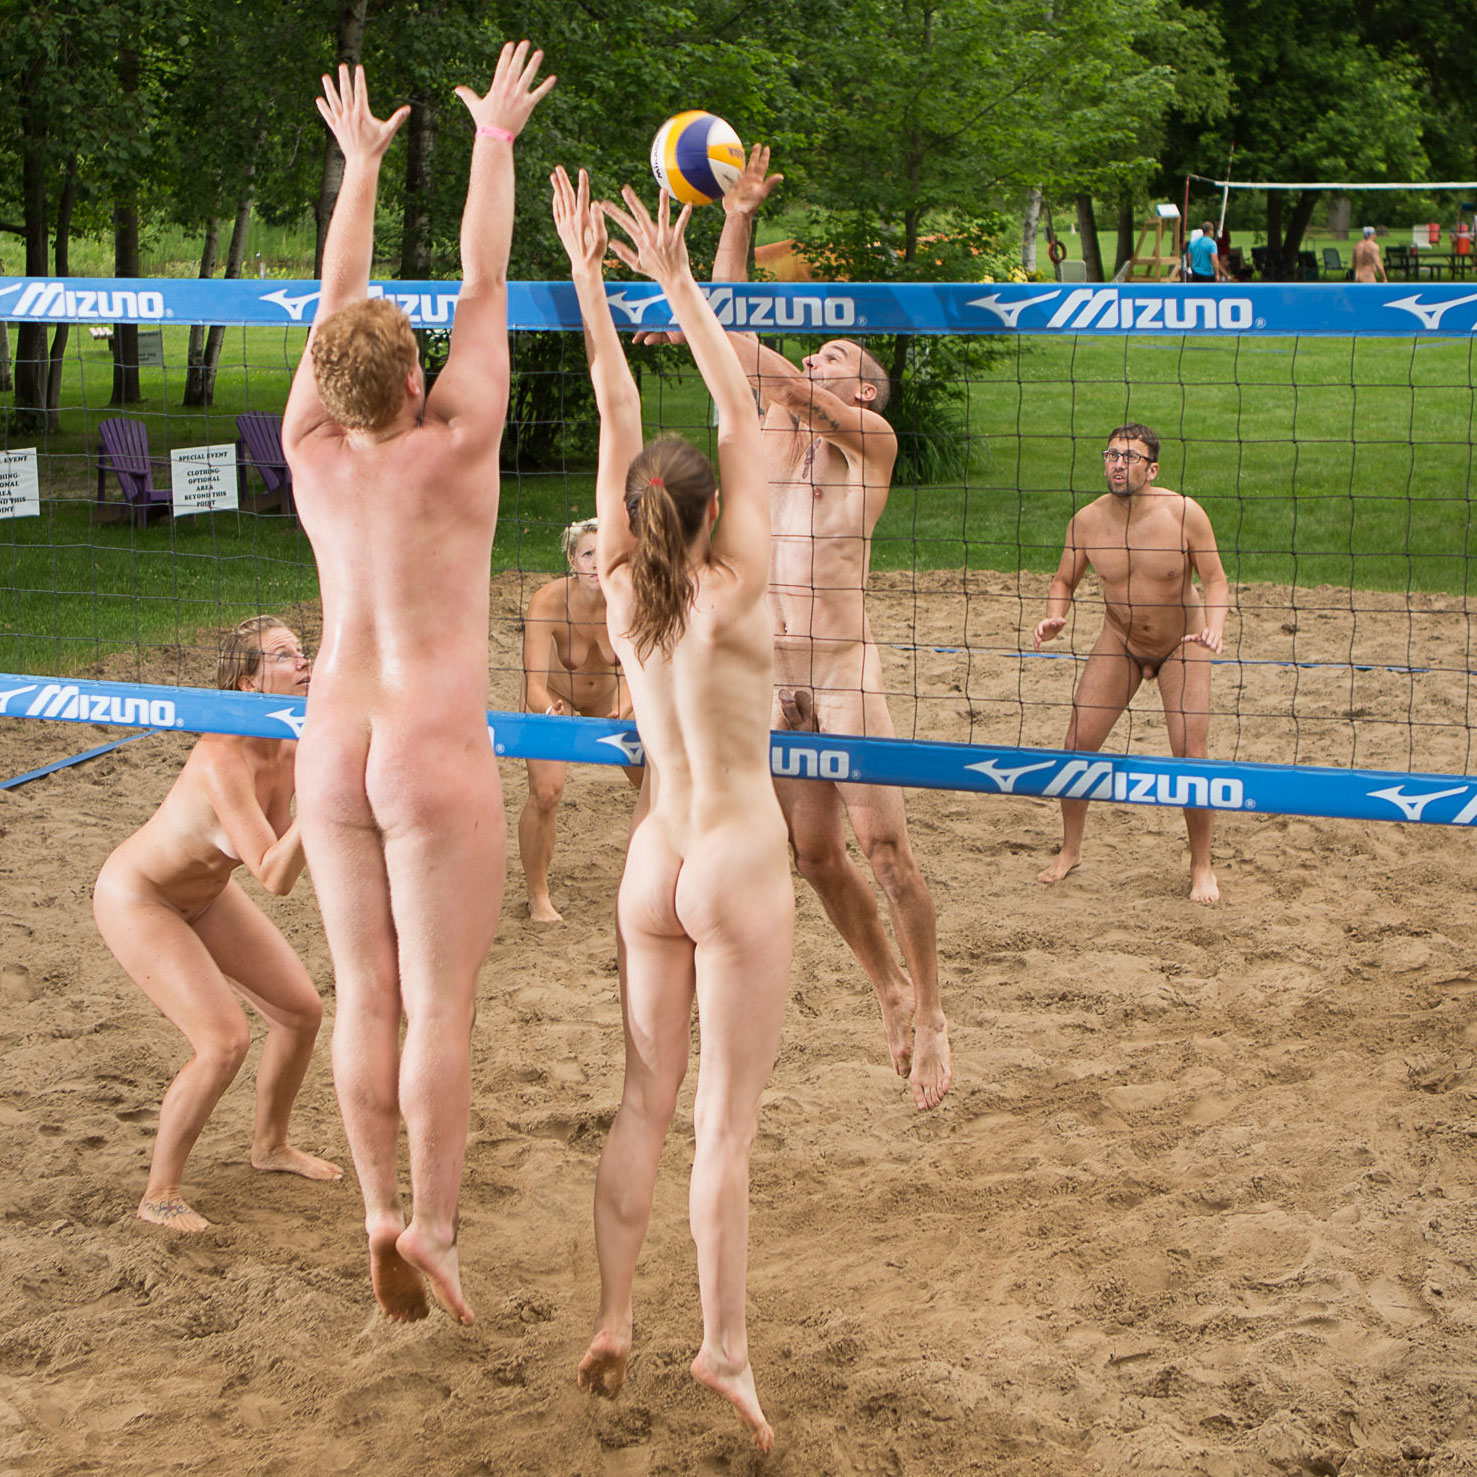 from Remy european nude beach volley ball